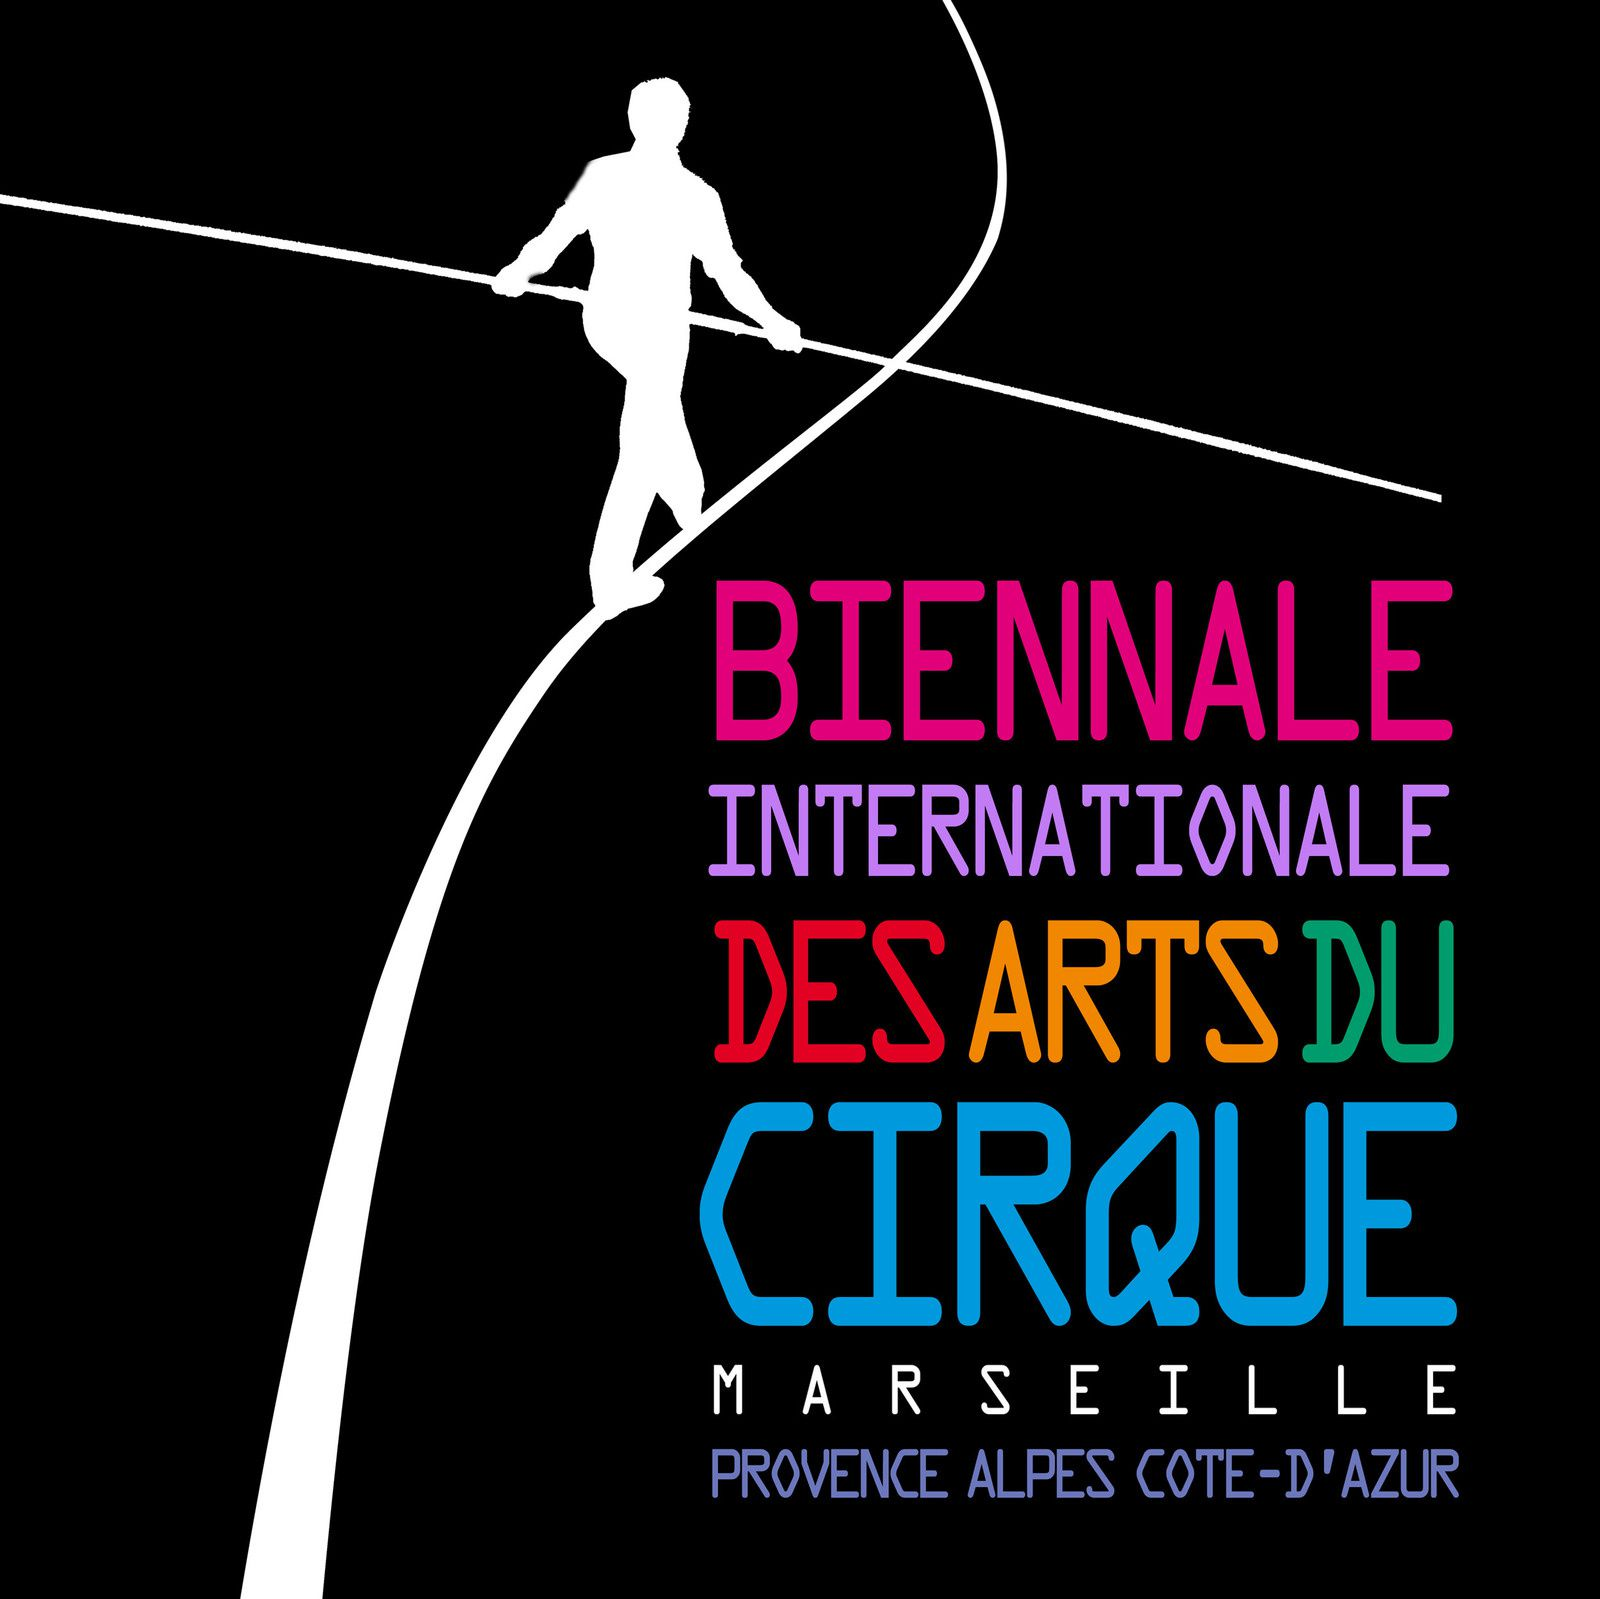 Raje Marseille - Nos Assos ont du Talent : Guy Carrara, co-directeur de la Biennale Internationale des Arts du Cirque Marseille Provence-Alpes Côte d'Azur